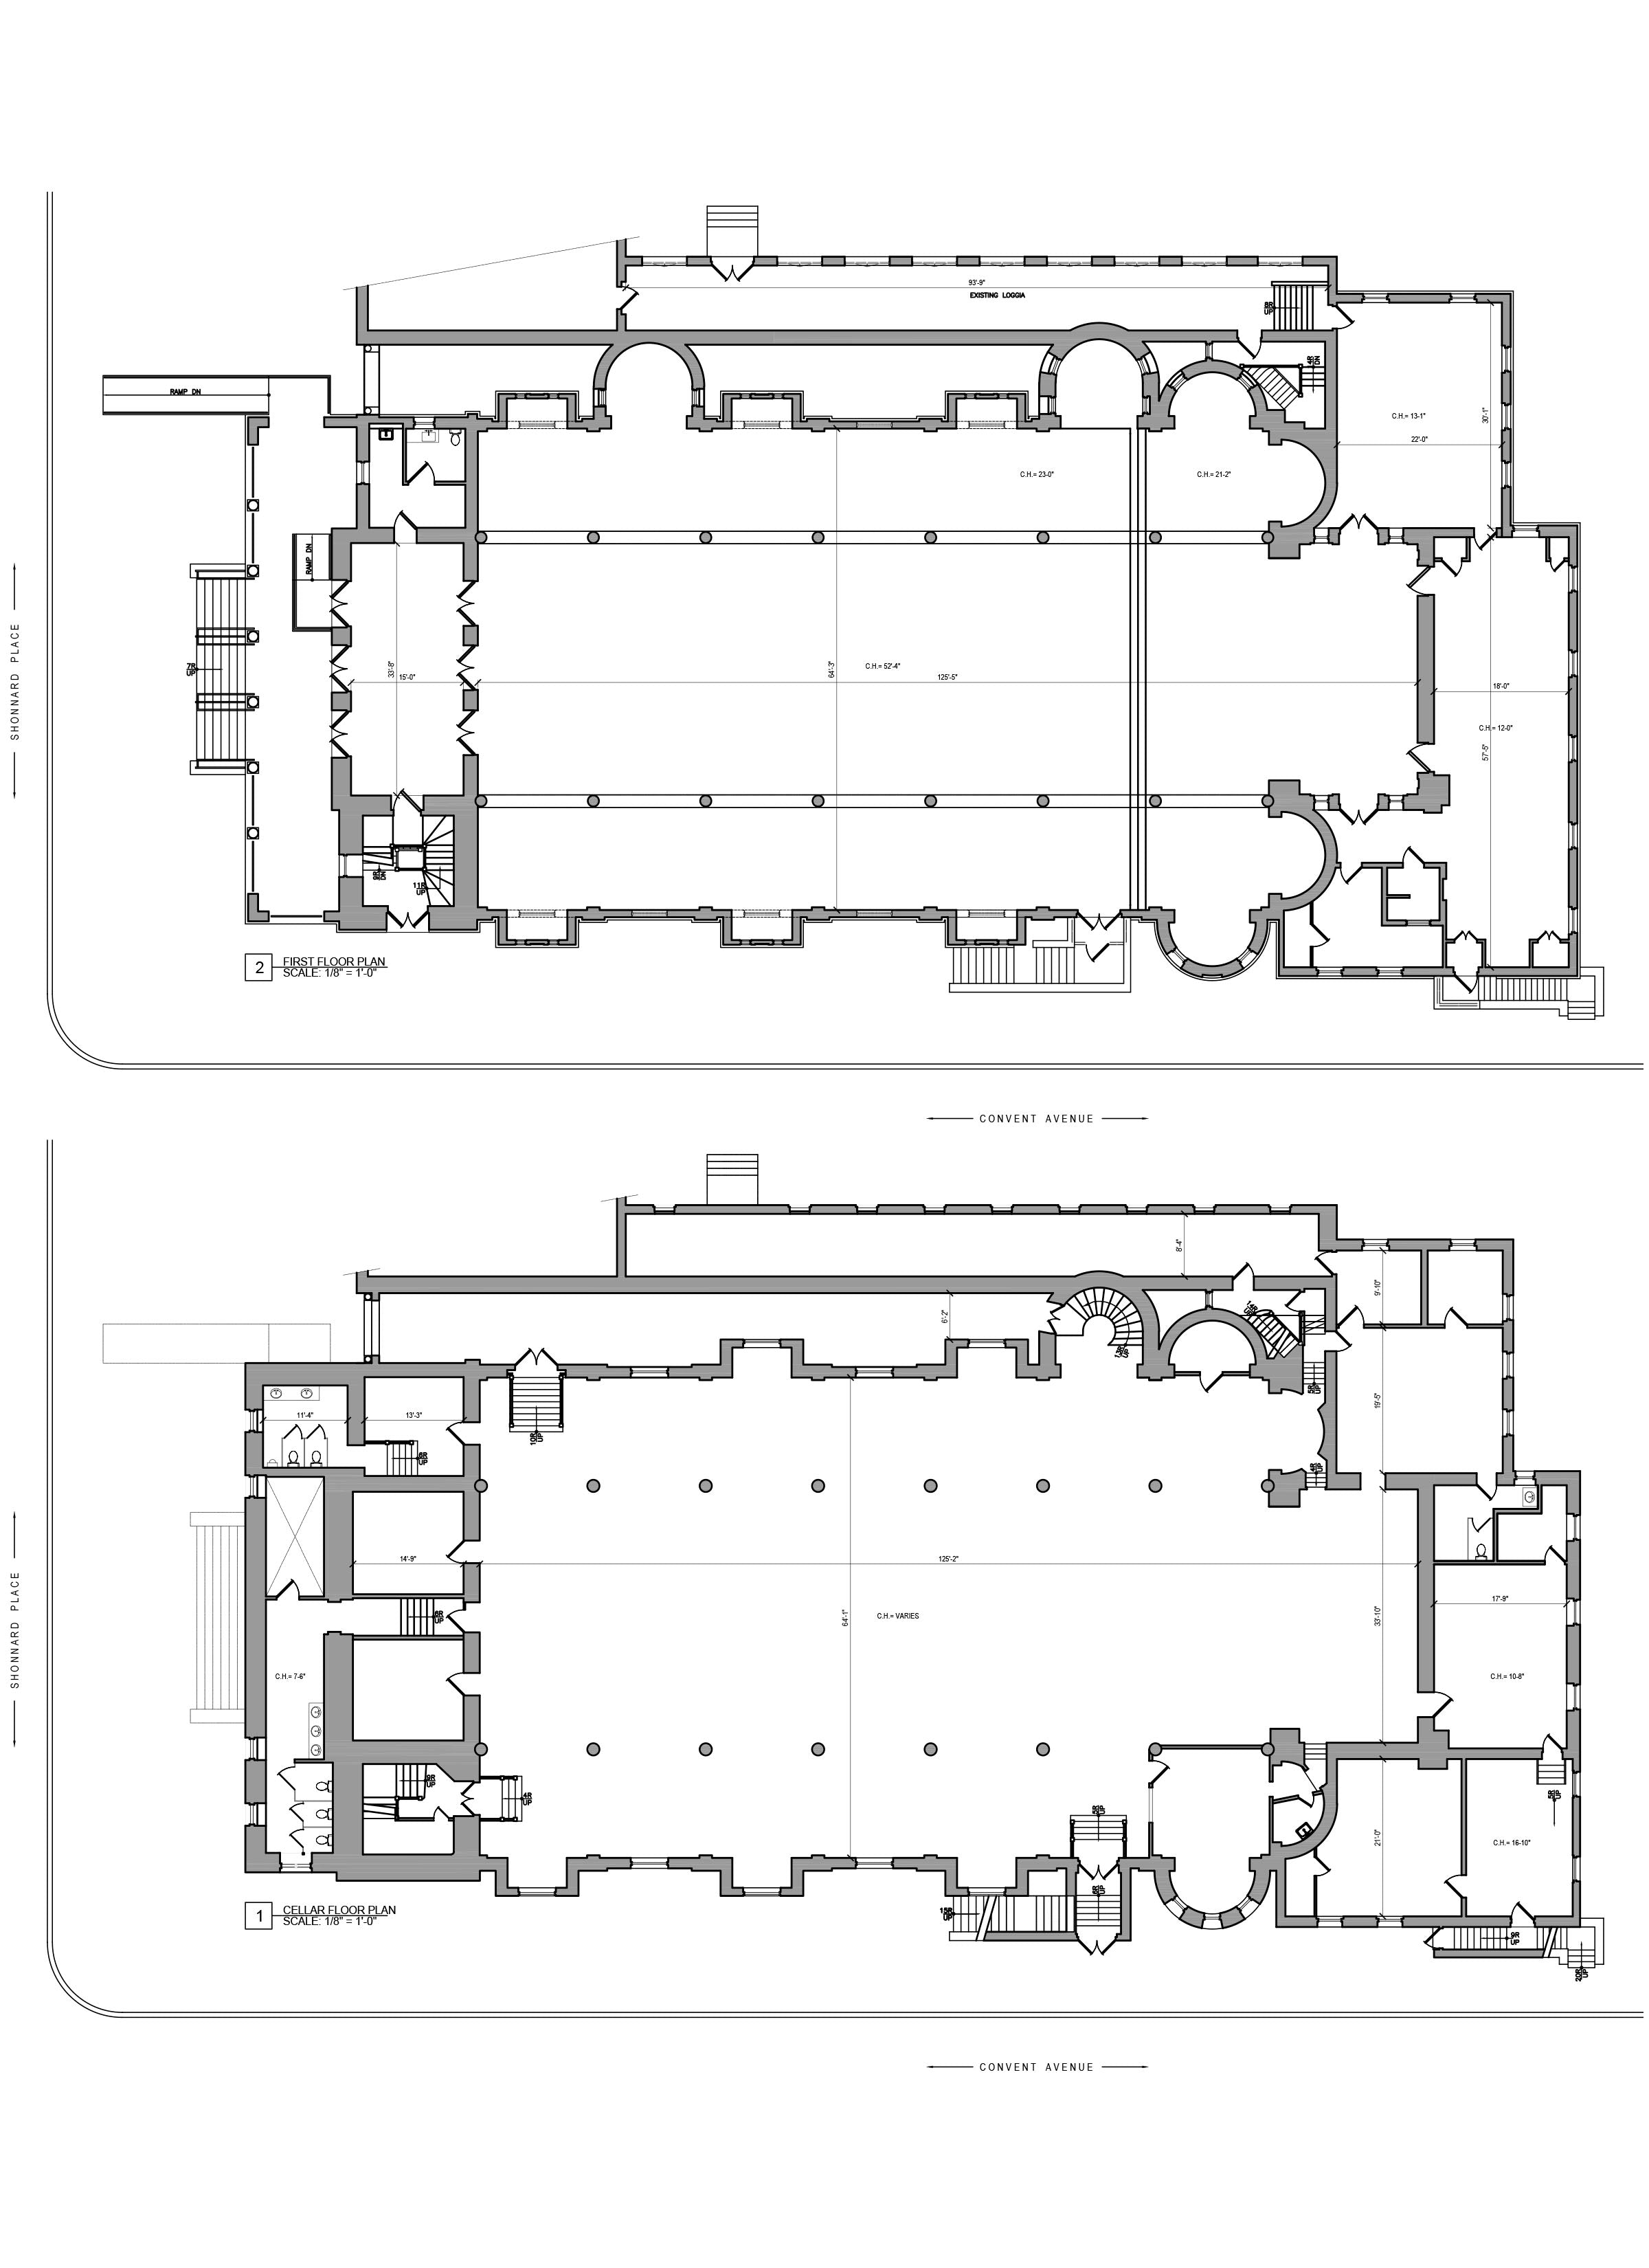 As Built Drawings - Building Survey_Church floor plan _Yonkers, NY